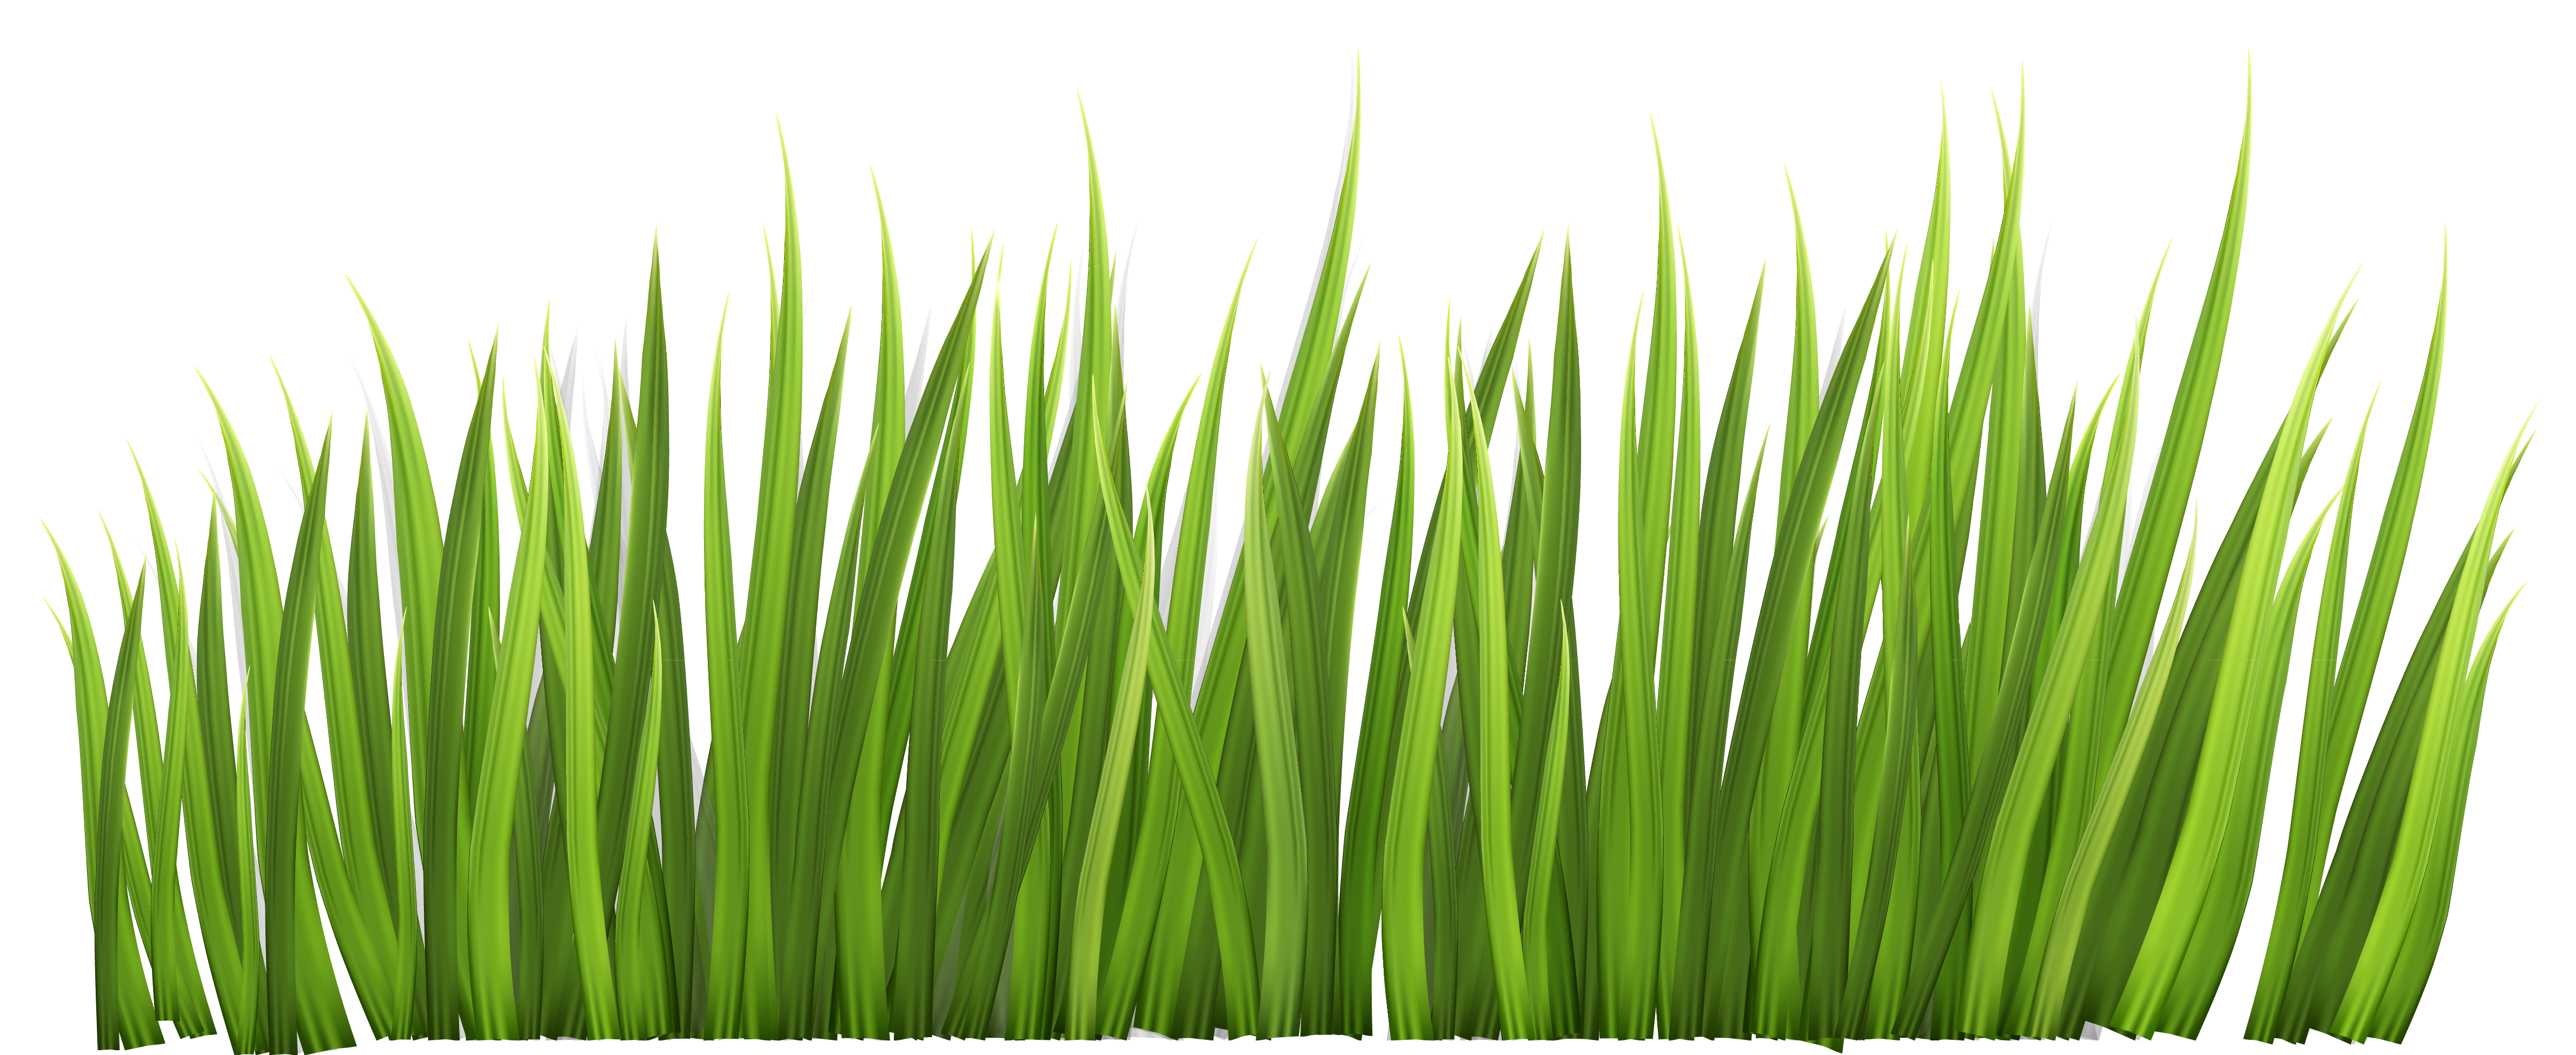 Grass graphic clipart graphic royalty free stock Grass graphic clipart - ClipartFest graphic royalty free stock